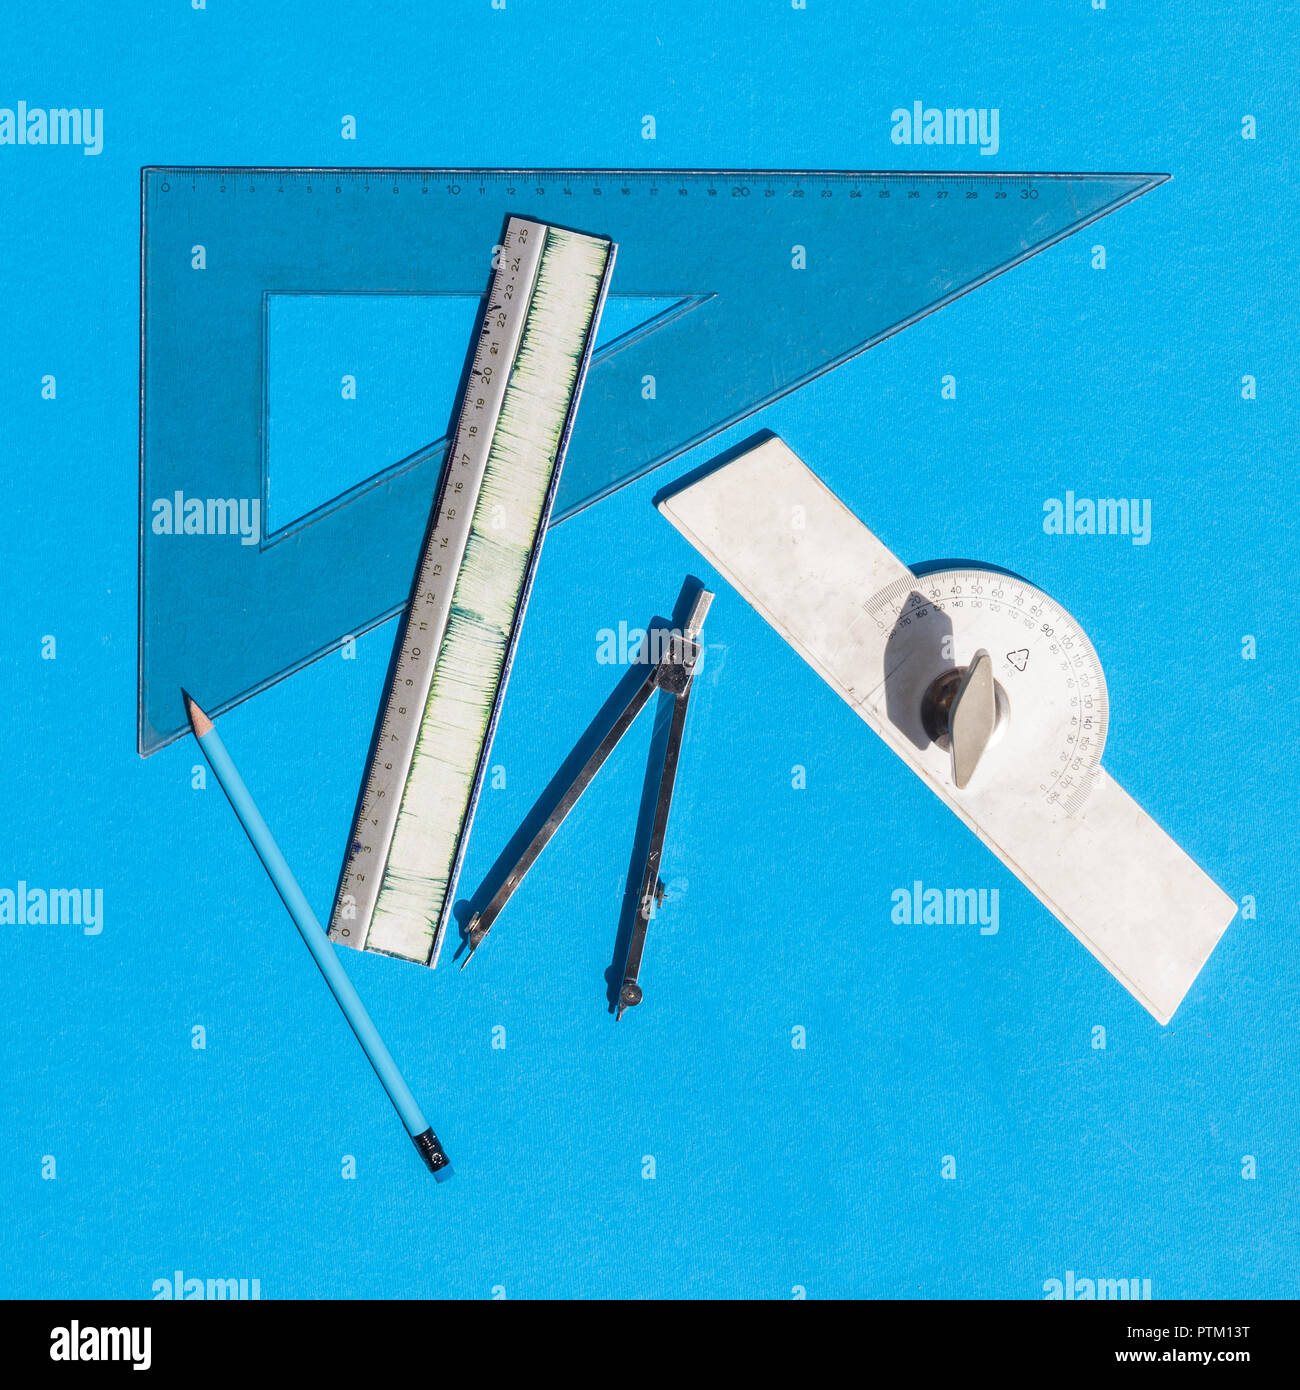 Geometry set with compass, rulers, pencil and protractor on blue background - top view - Stock Image